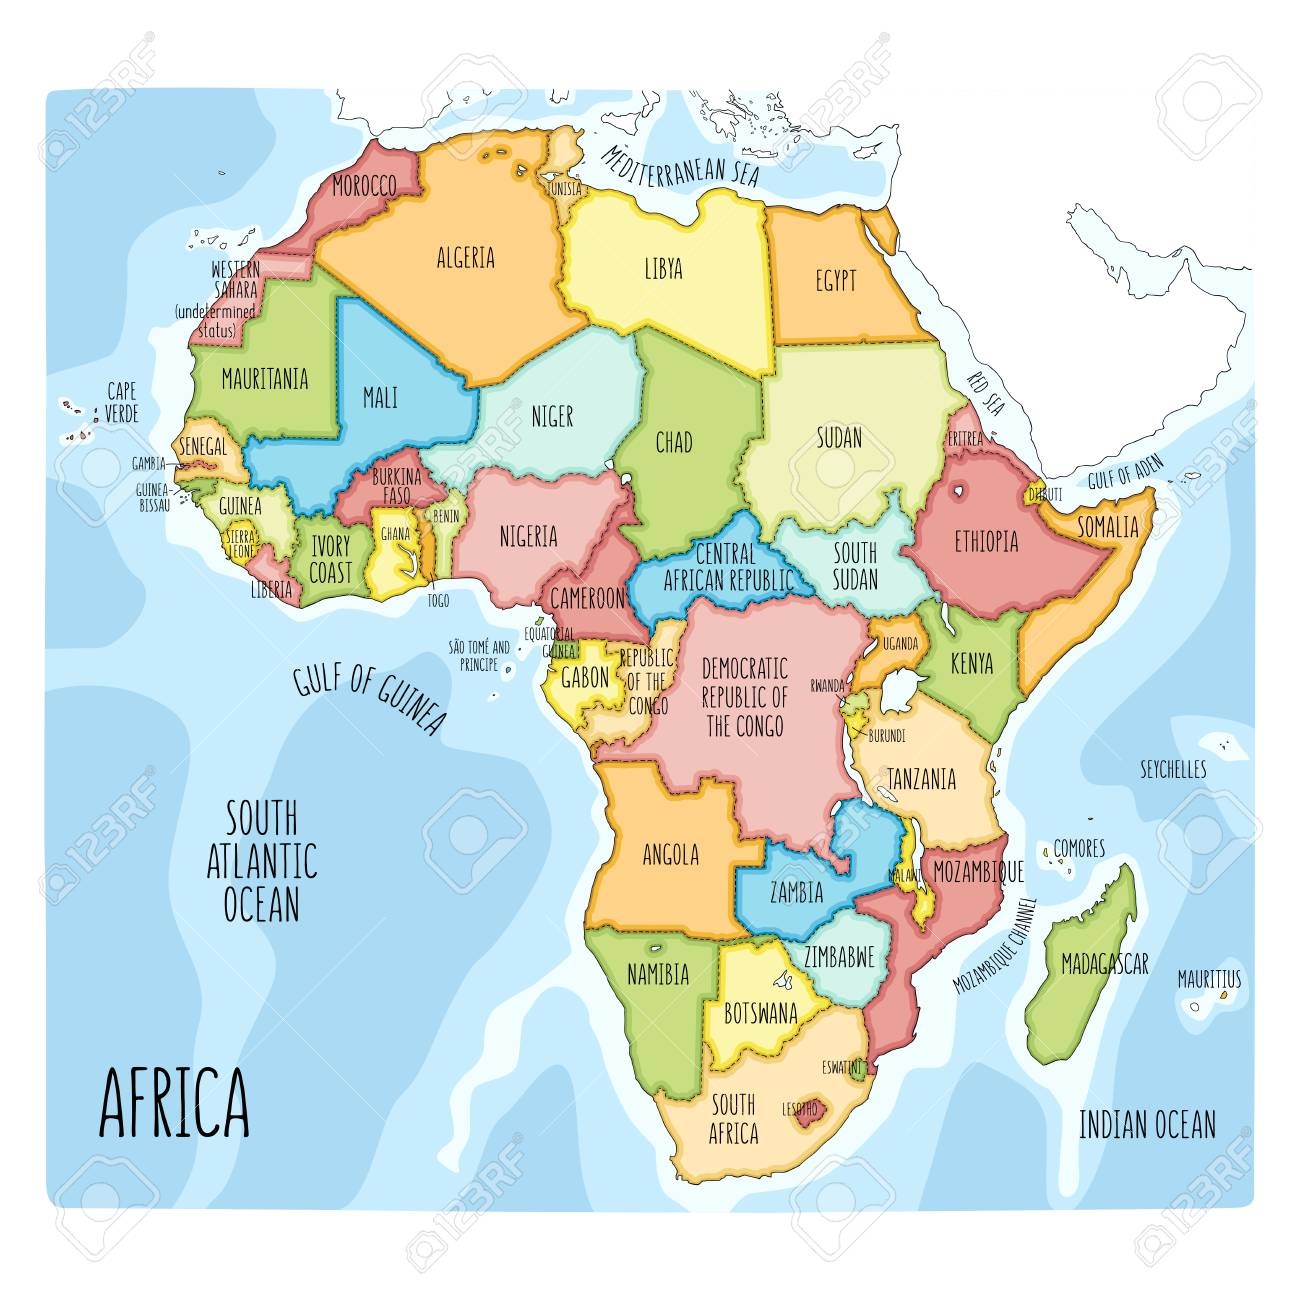 Vector political map of Africa. Colorful hand drawn illustration.. on map of earth illustration, map of egypt illustration, map of japan illustration, map of zambia illustration, map of united states illustration, map of ancient greece illustration, world map illustration, map of italy illustration,